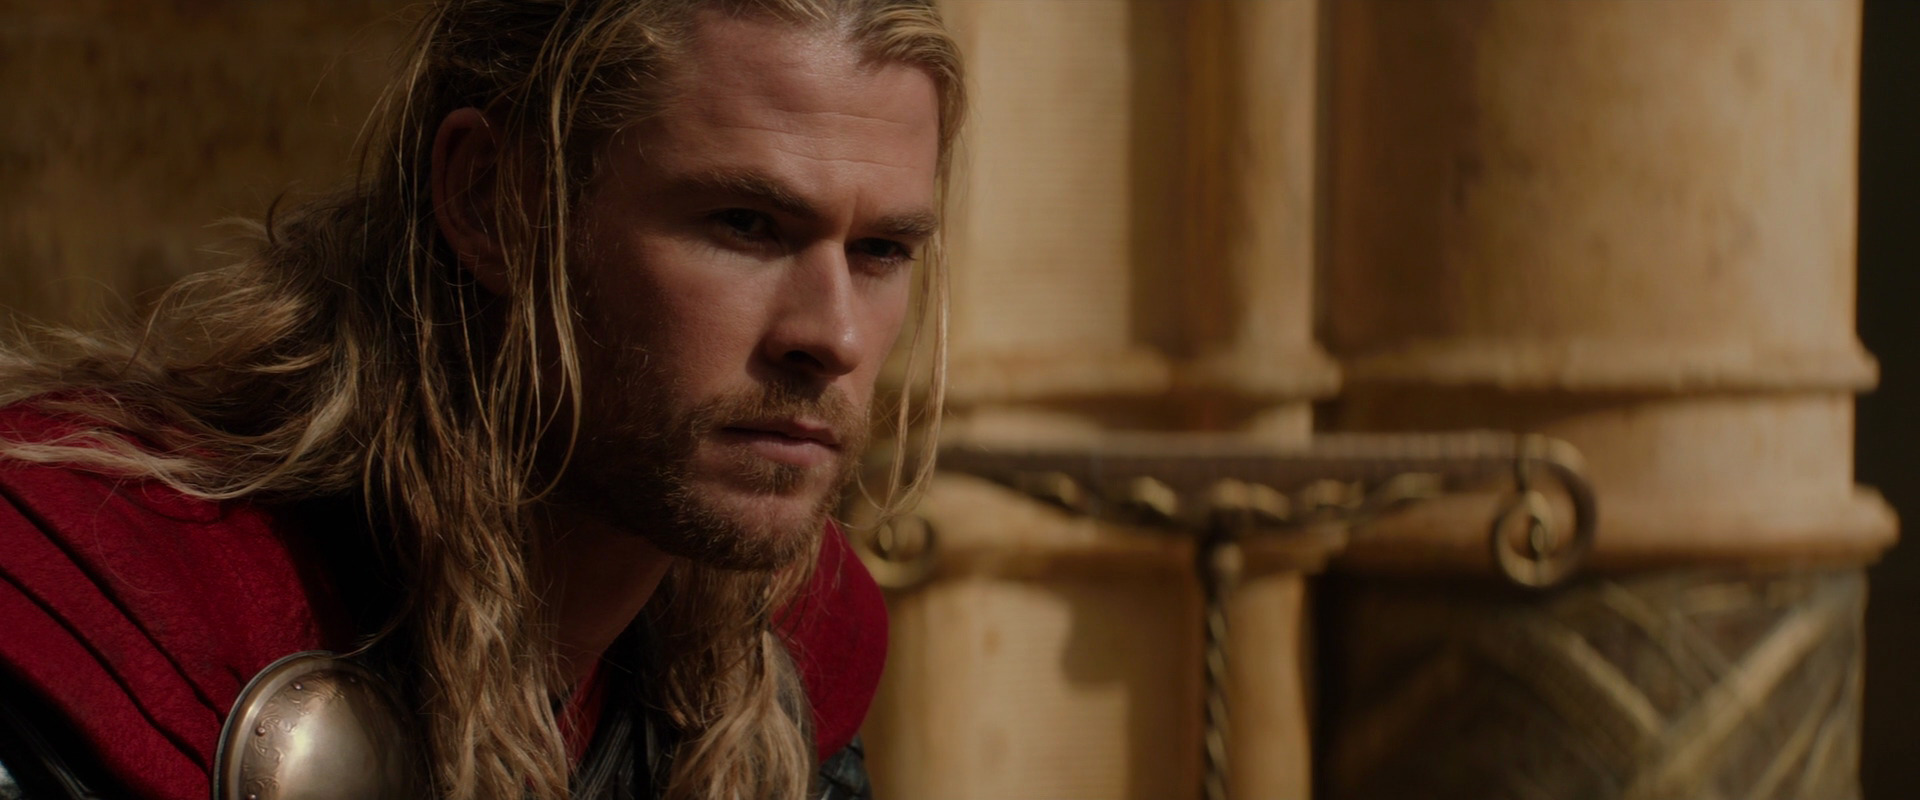 image - thor-dark-world-movie-screencaps com-1181 | marvel